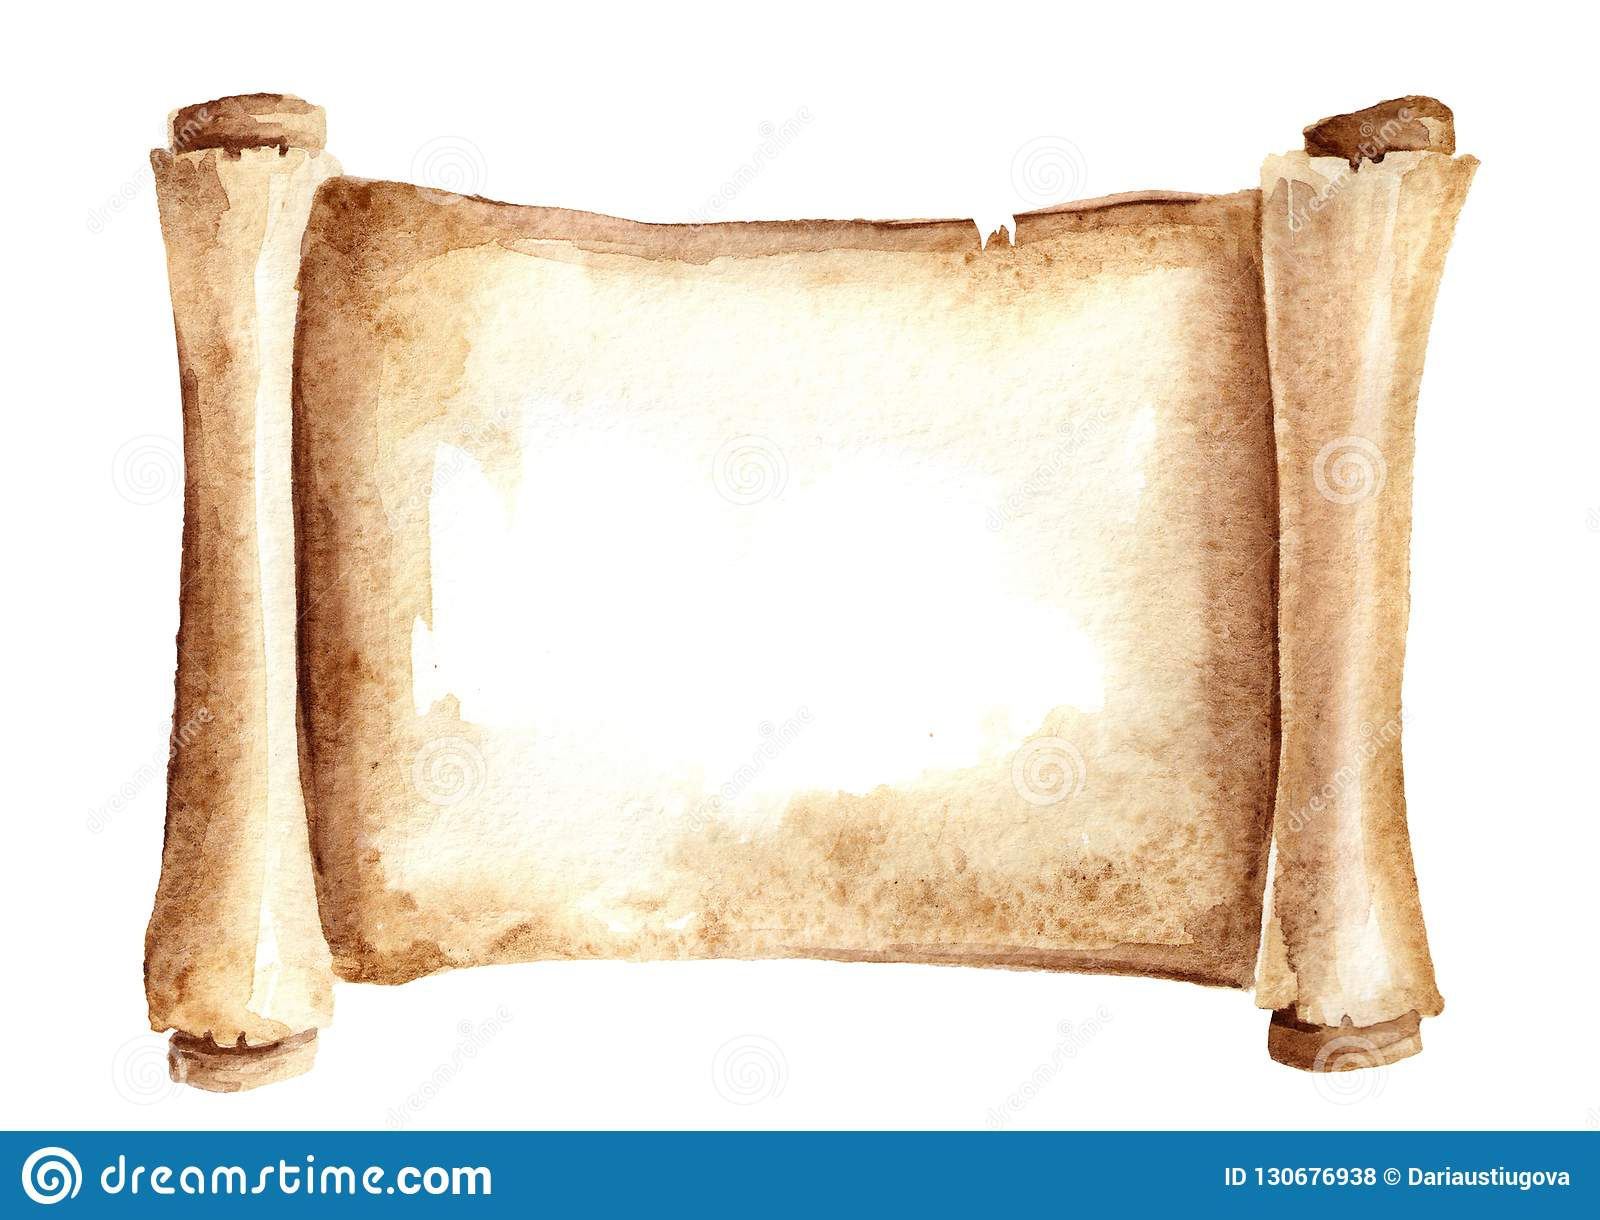 Old paper scroll or horizontal parchment. Watercolor hand drawn illustration isolated on white background.